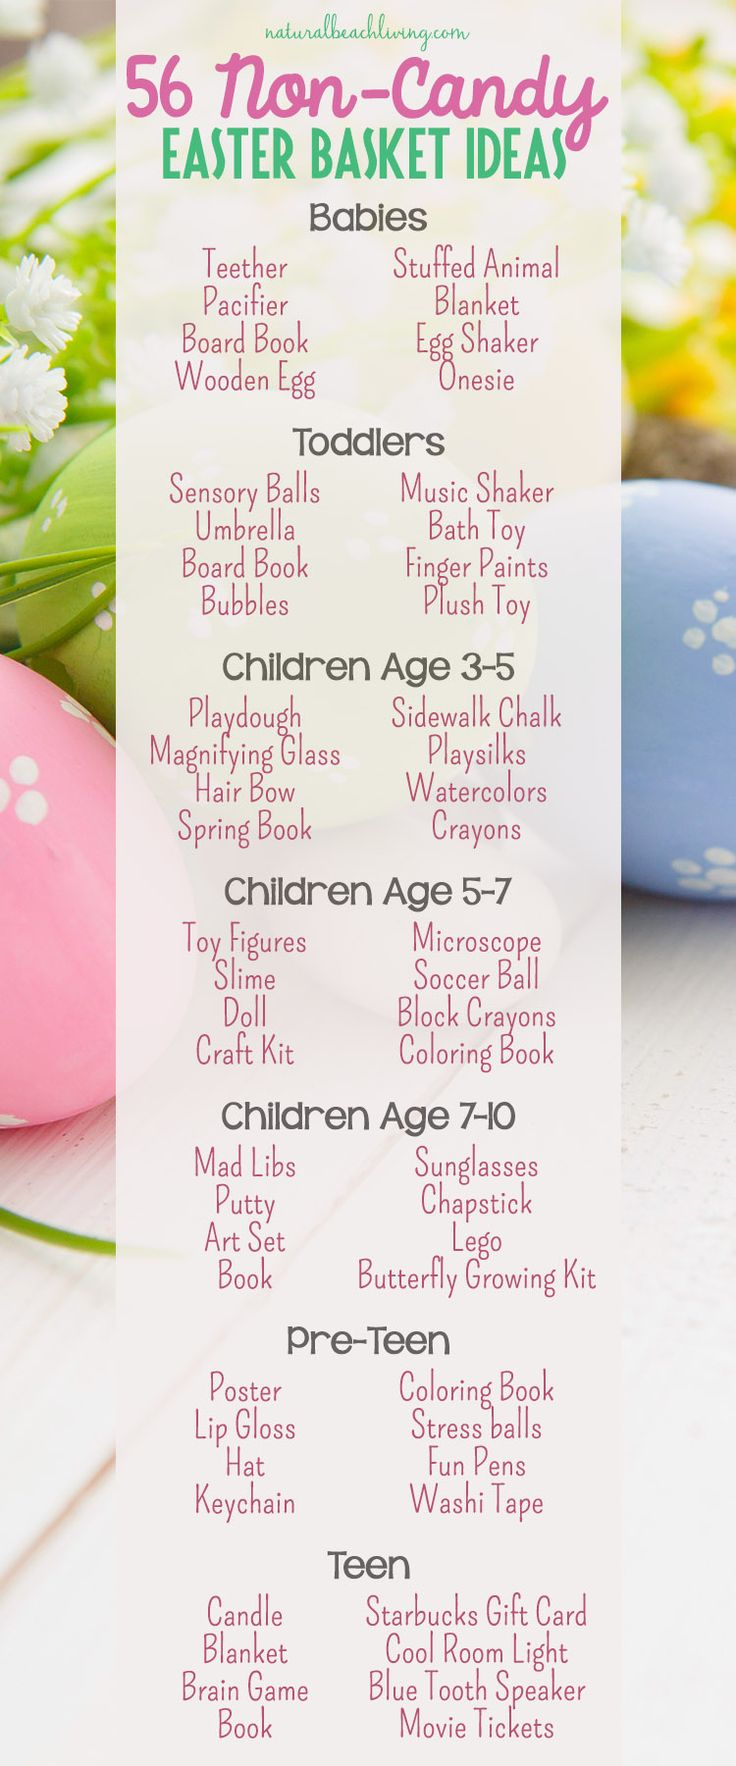 28 best holidays easter images on pinterest egg crates 28 best holidays easter images on pinterest egg crates activities for kids and bricolage negle Choice Image